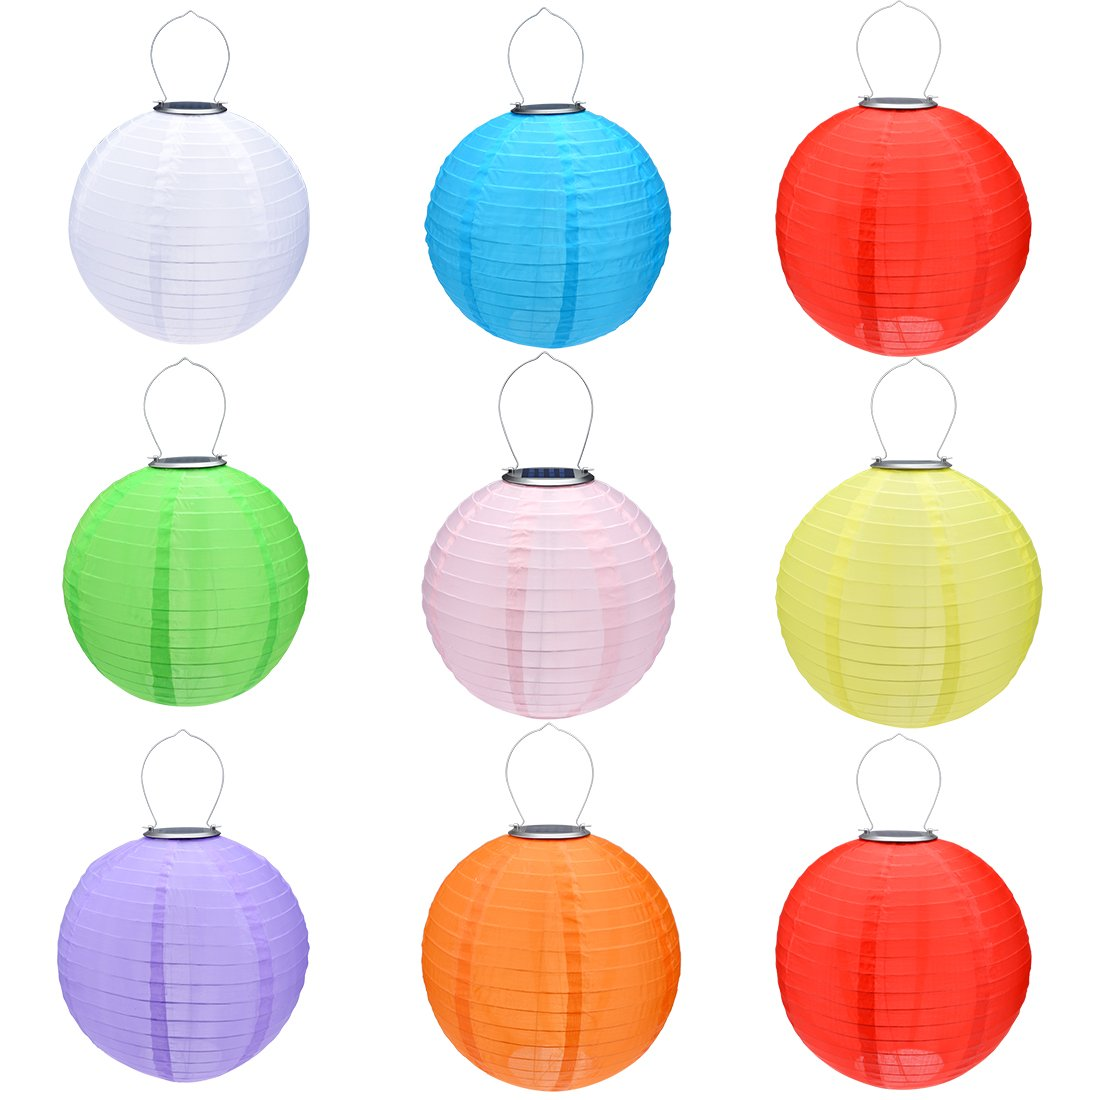 uxcell 9 Packs Multi-Color 10'' Solar Powered Lanterns Chinese Hanging Solar Lamps for Christmas Party